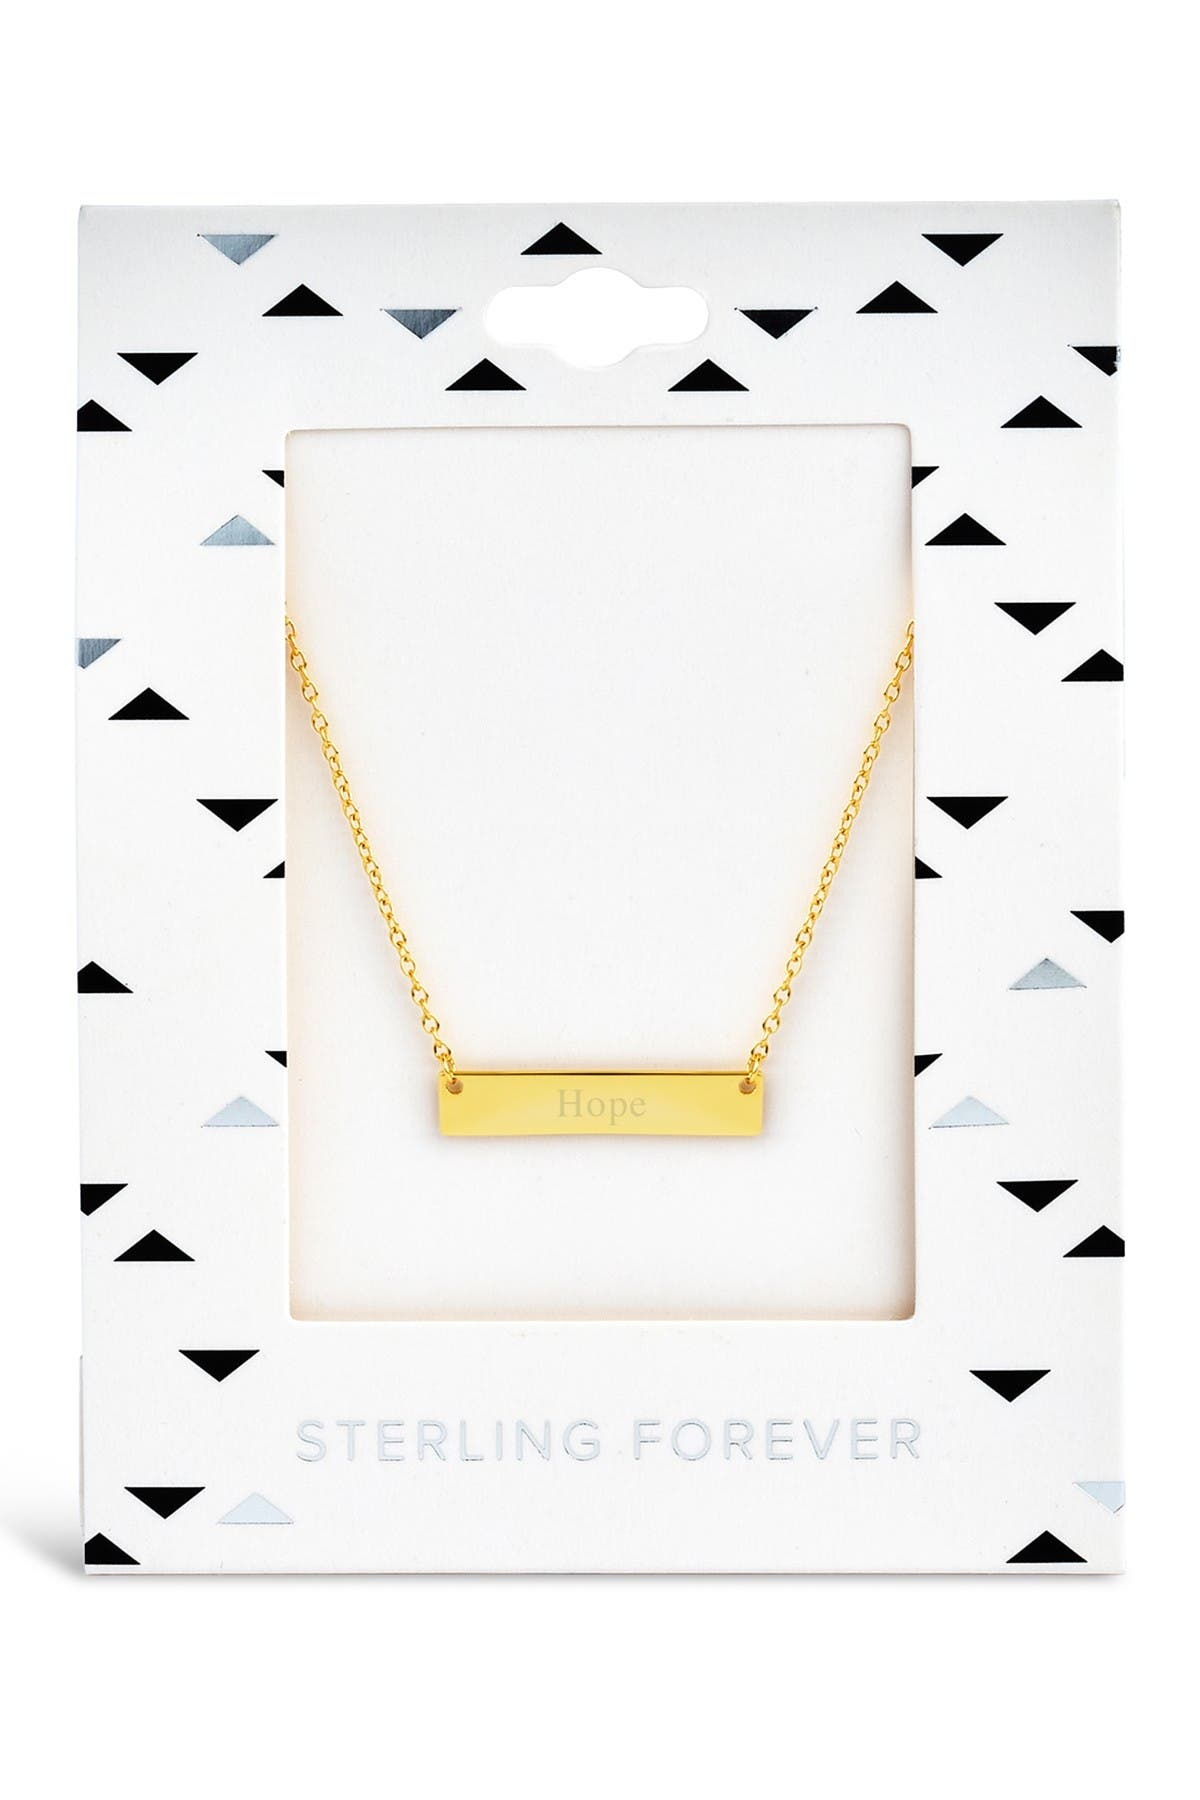 Sterling Forever 14K Yellow Gold Plated Sterling Silver Bar Pendant Necklace - Hope